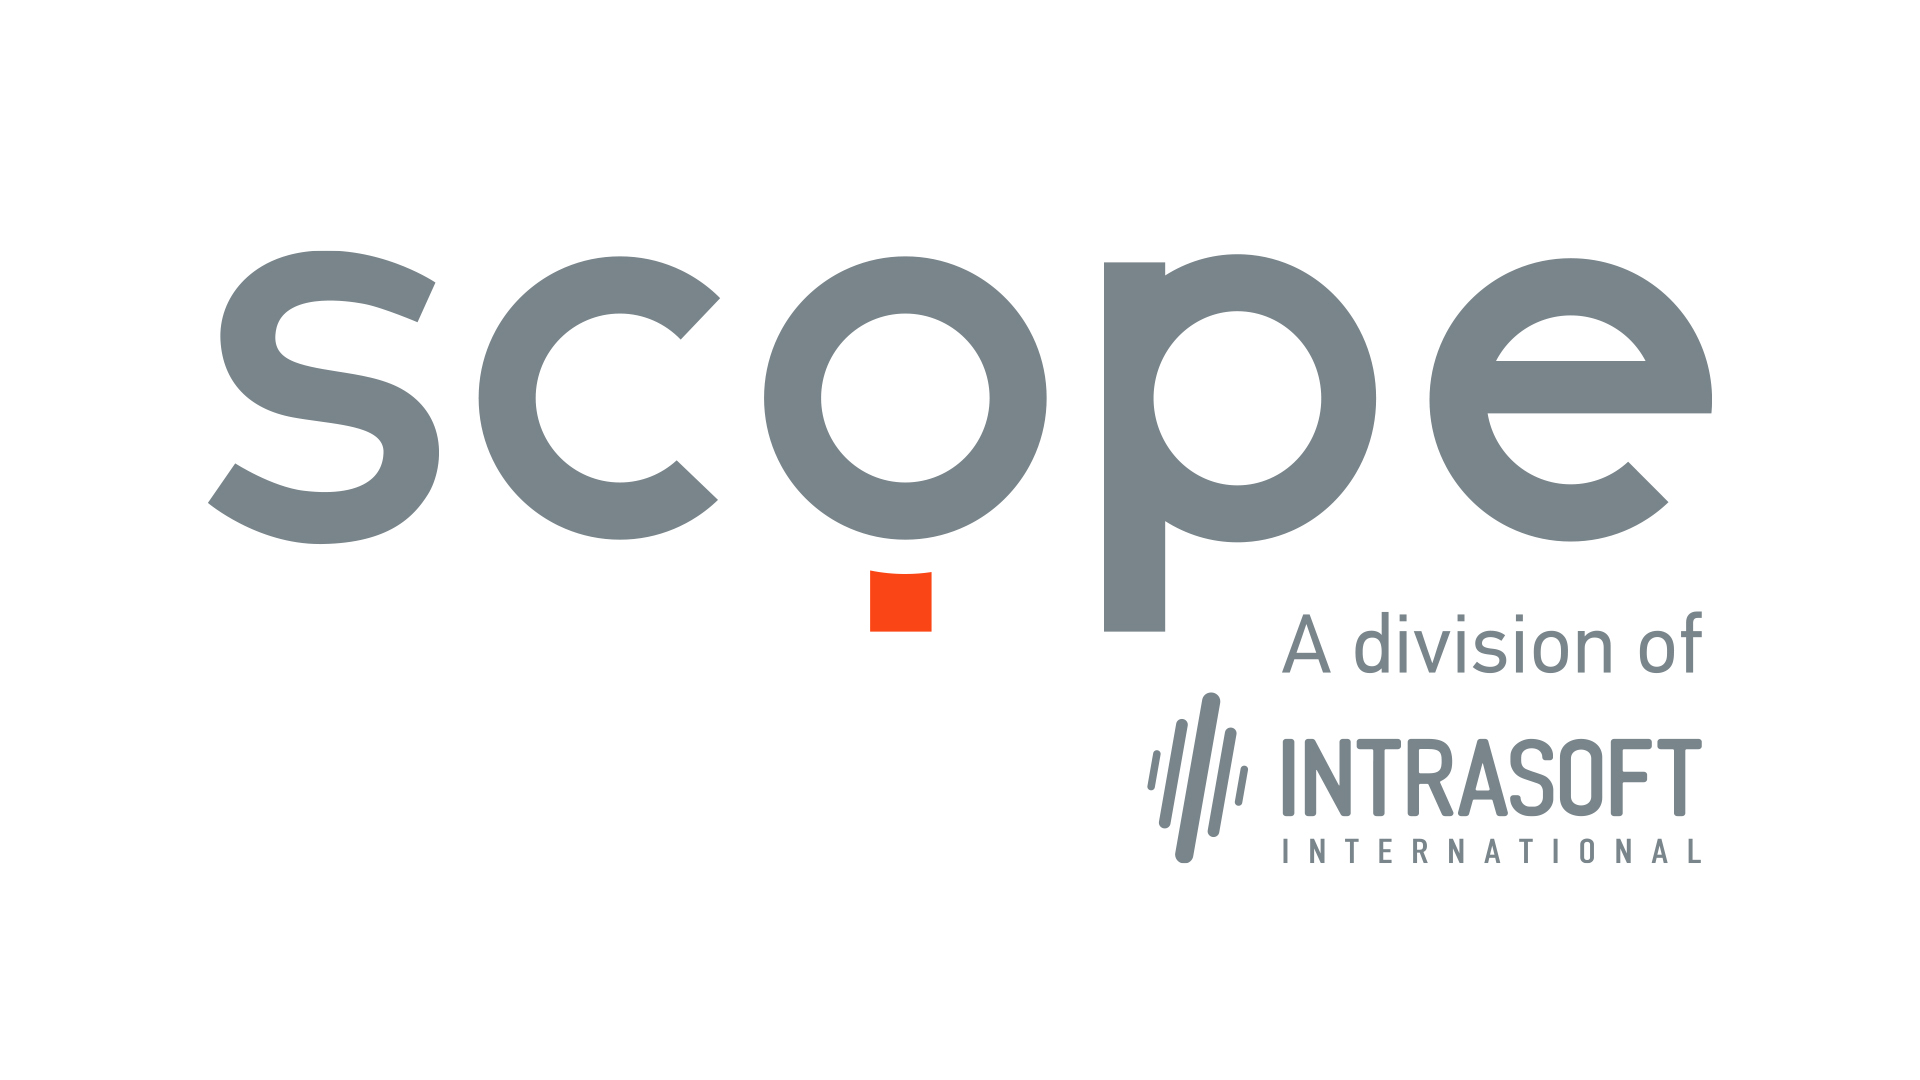 Scope a division of INTRASOFT